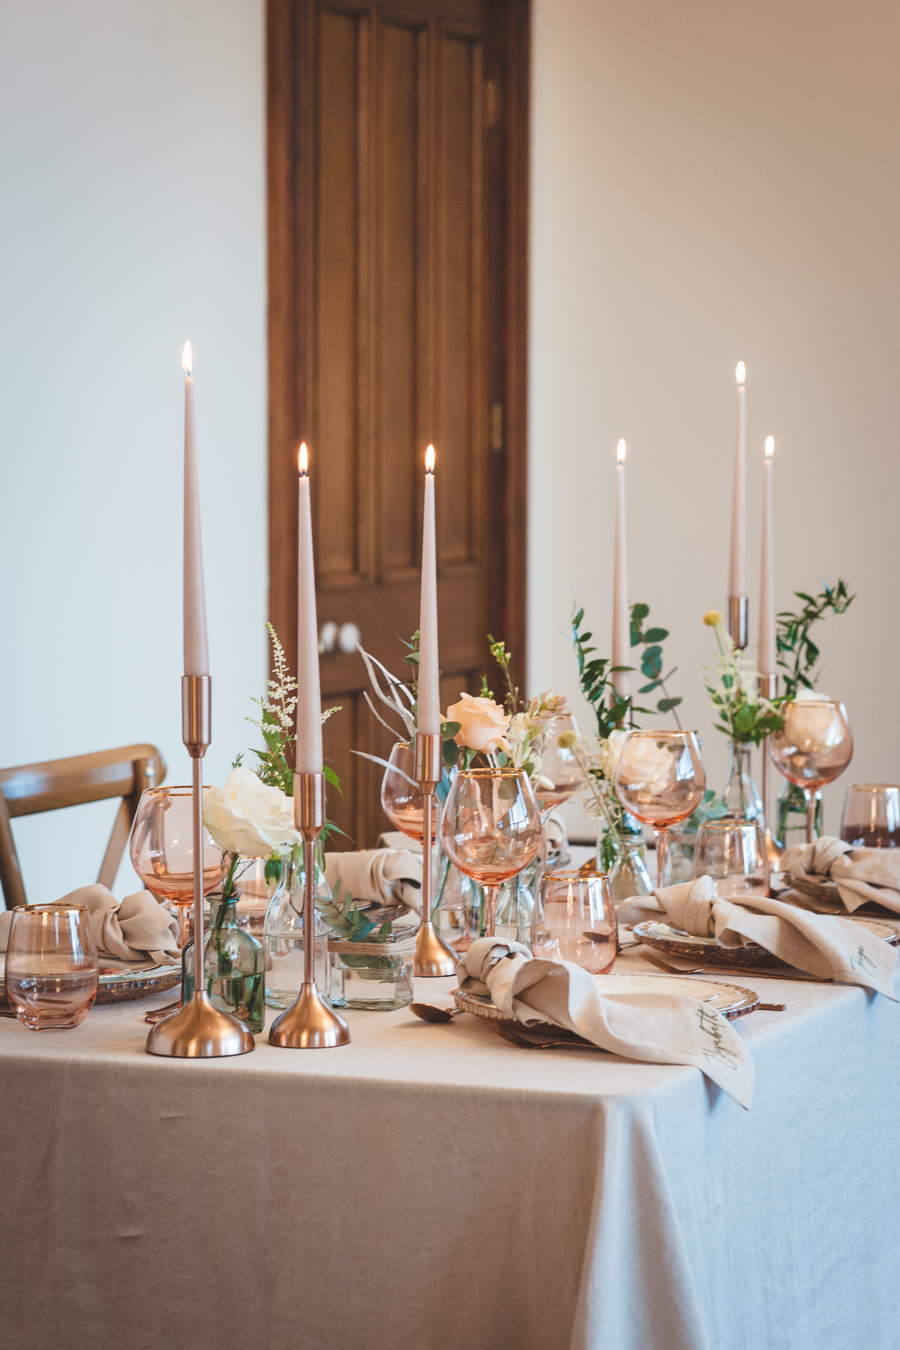 Yorkshire wedding venue styling ideas, photo credit Boho Chic Weddings (5)